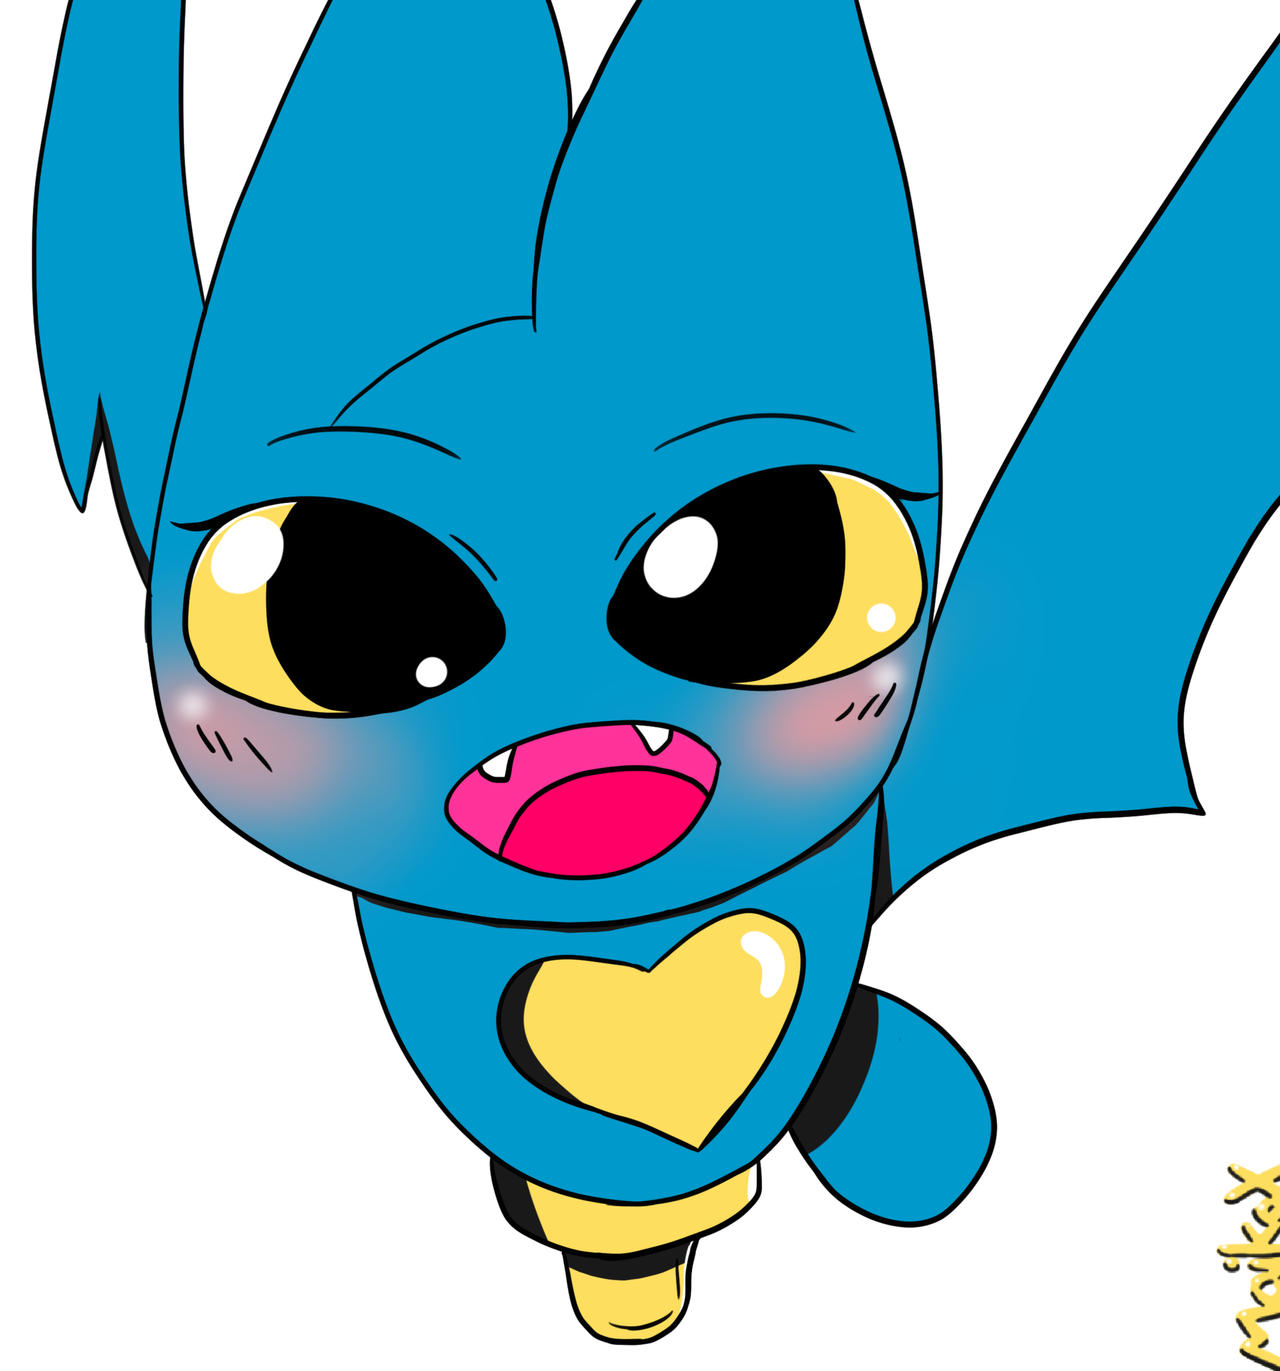 Adorabat By Maikoxsekai On Deviantart And most ferocious bat in all of pure heart valley. adorabat by maikoxsekai on deviantart